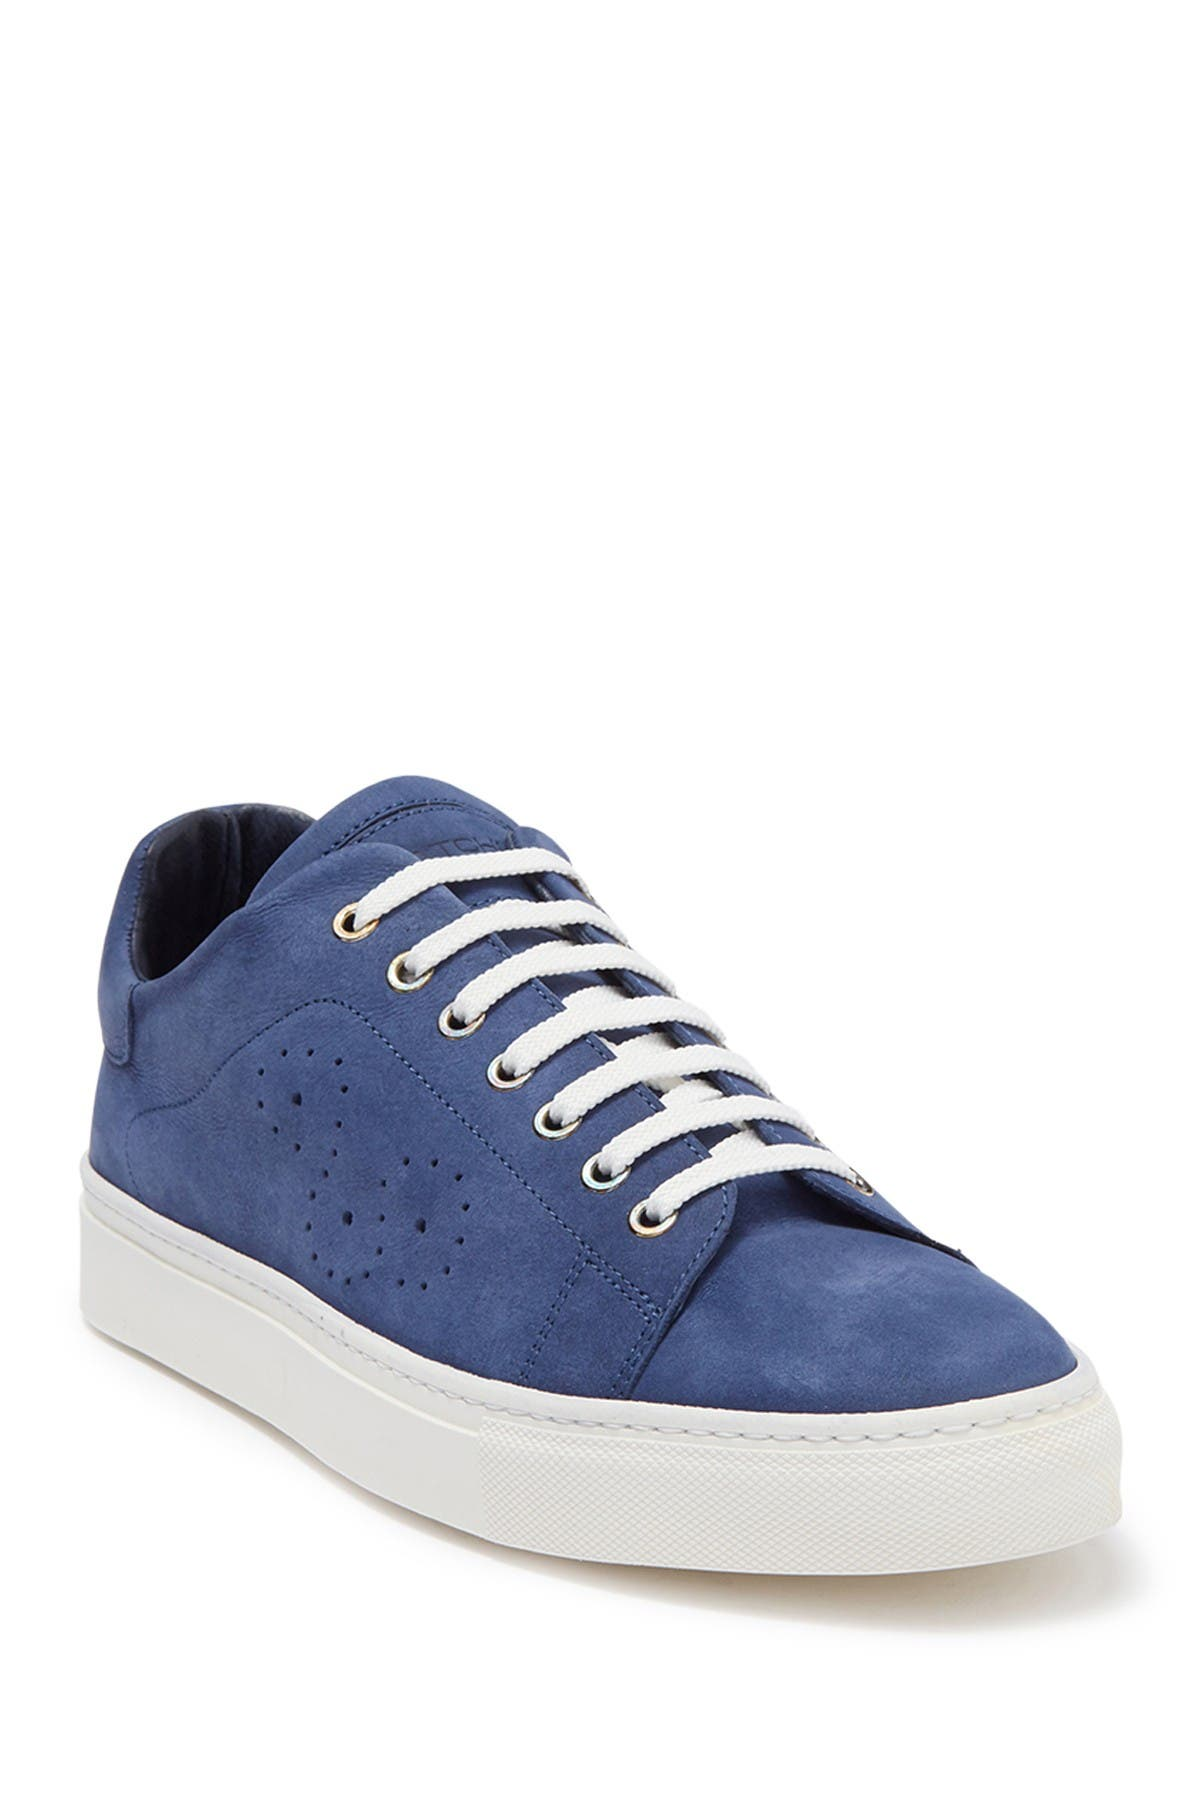 Bugatchi | Solid Nubuck Leather Sneaker